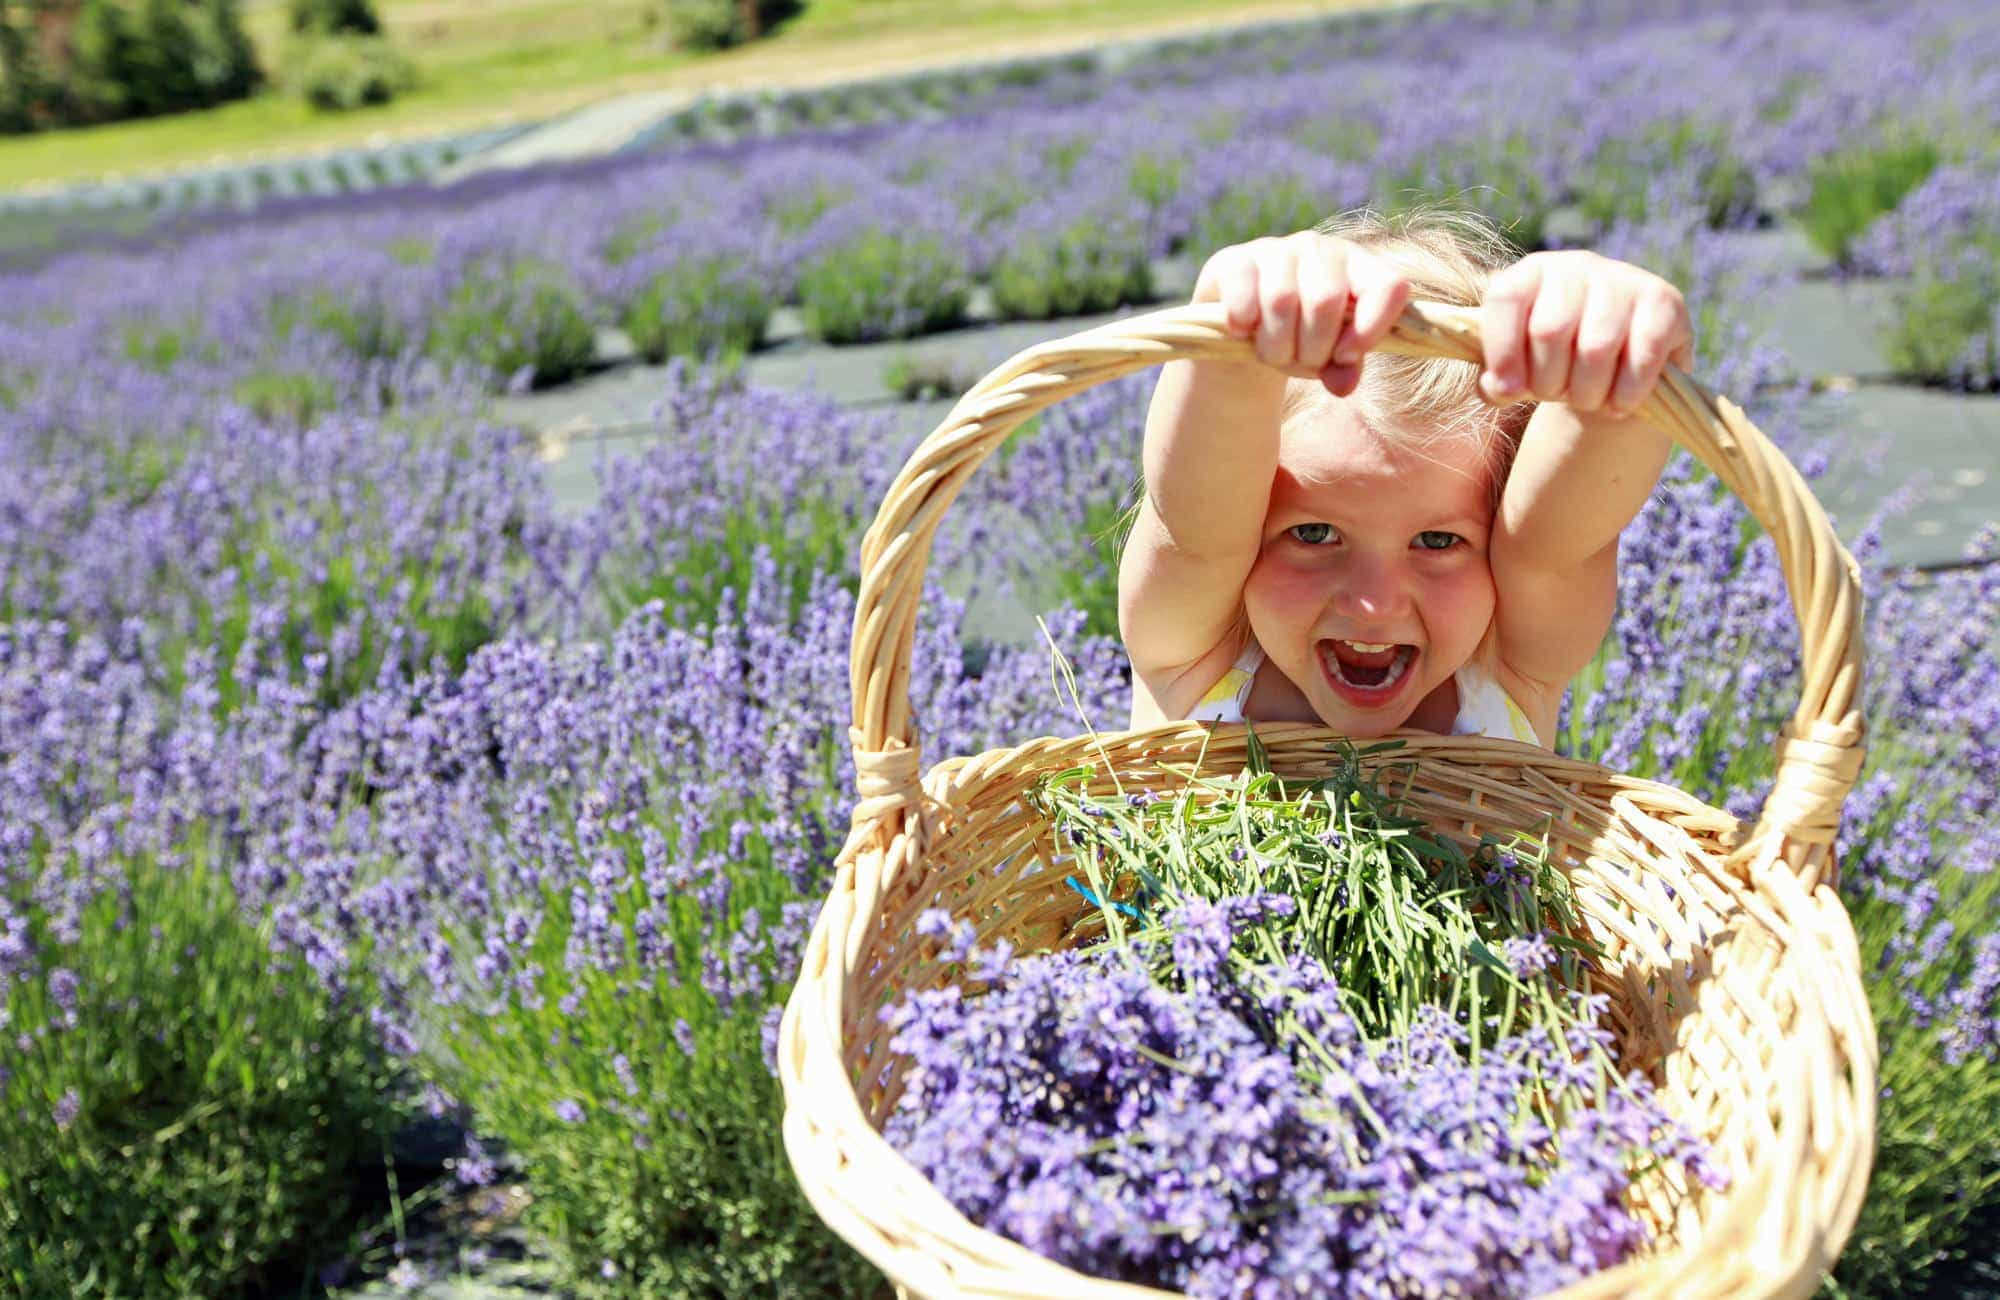 Daughter proudly holding basket of lavender